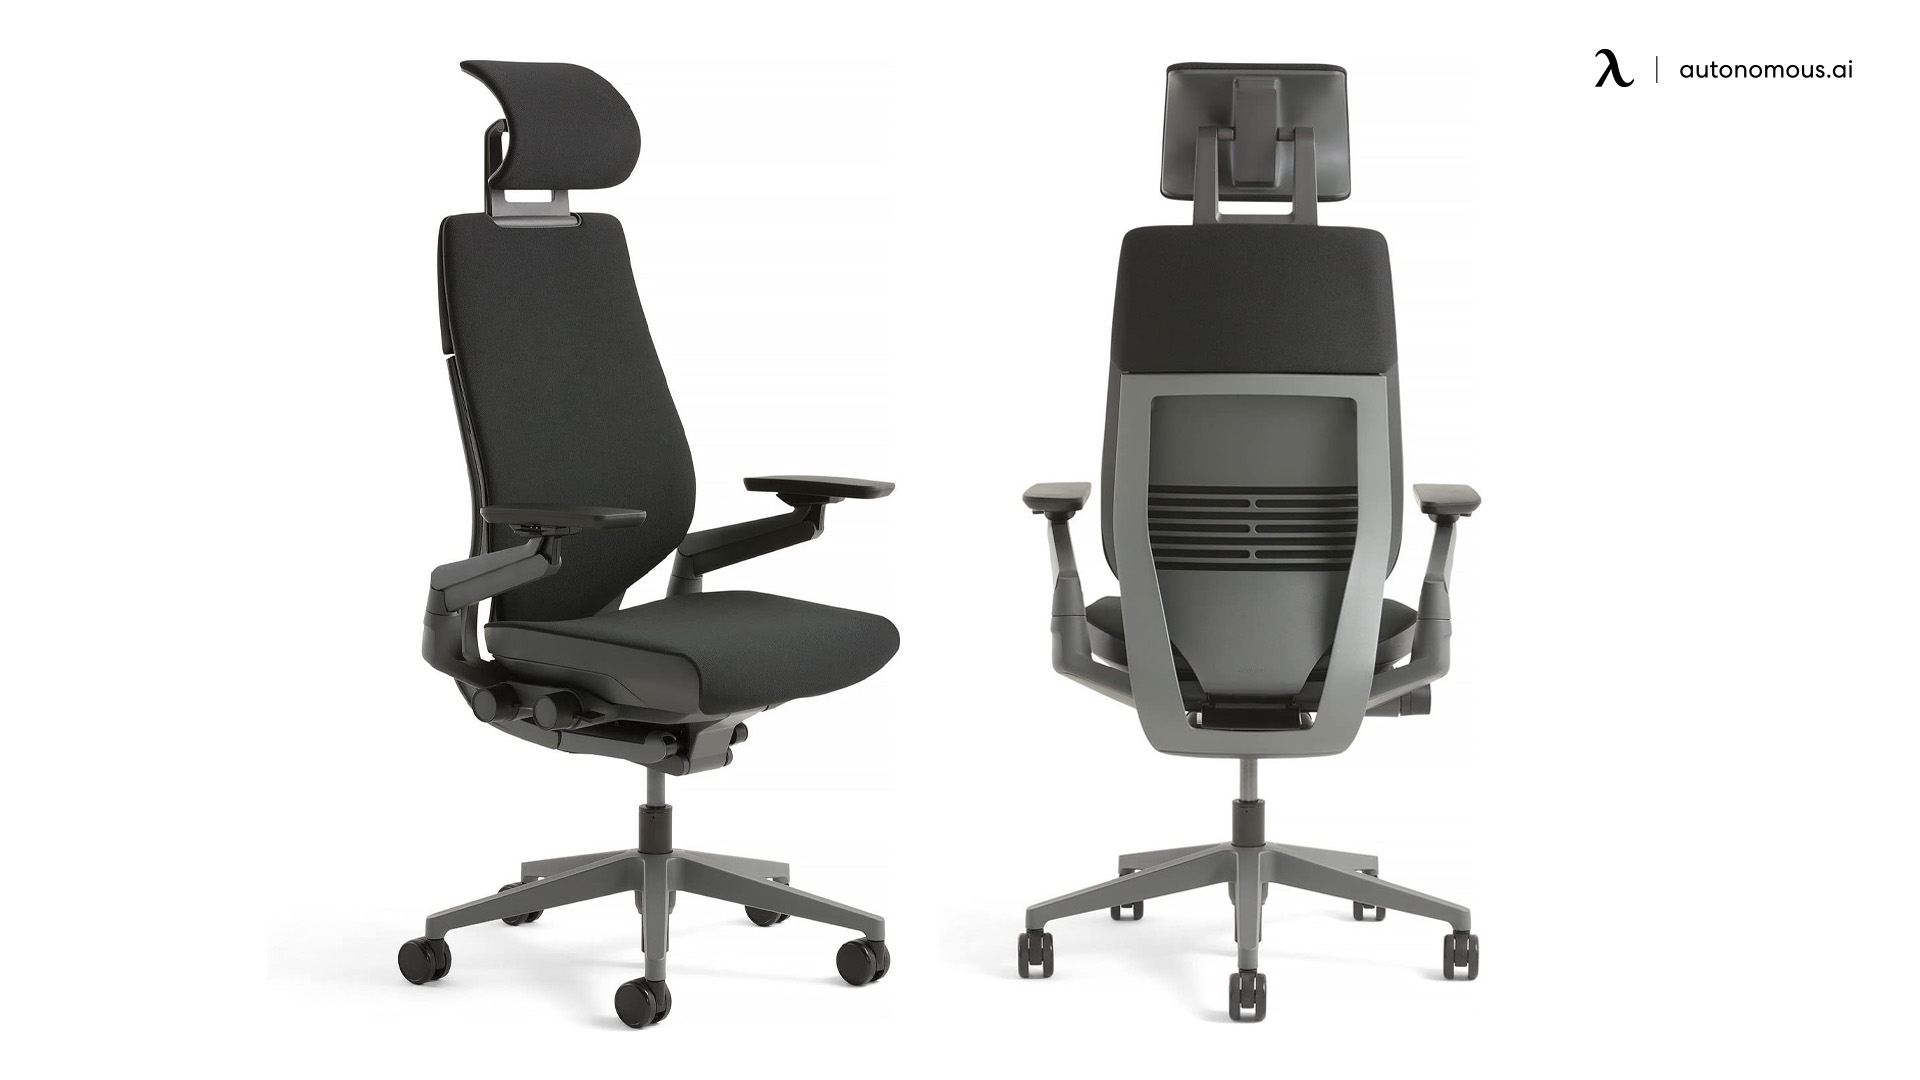 The Steelcase Gesture Office Desk Chair